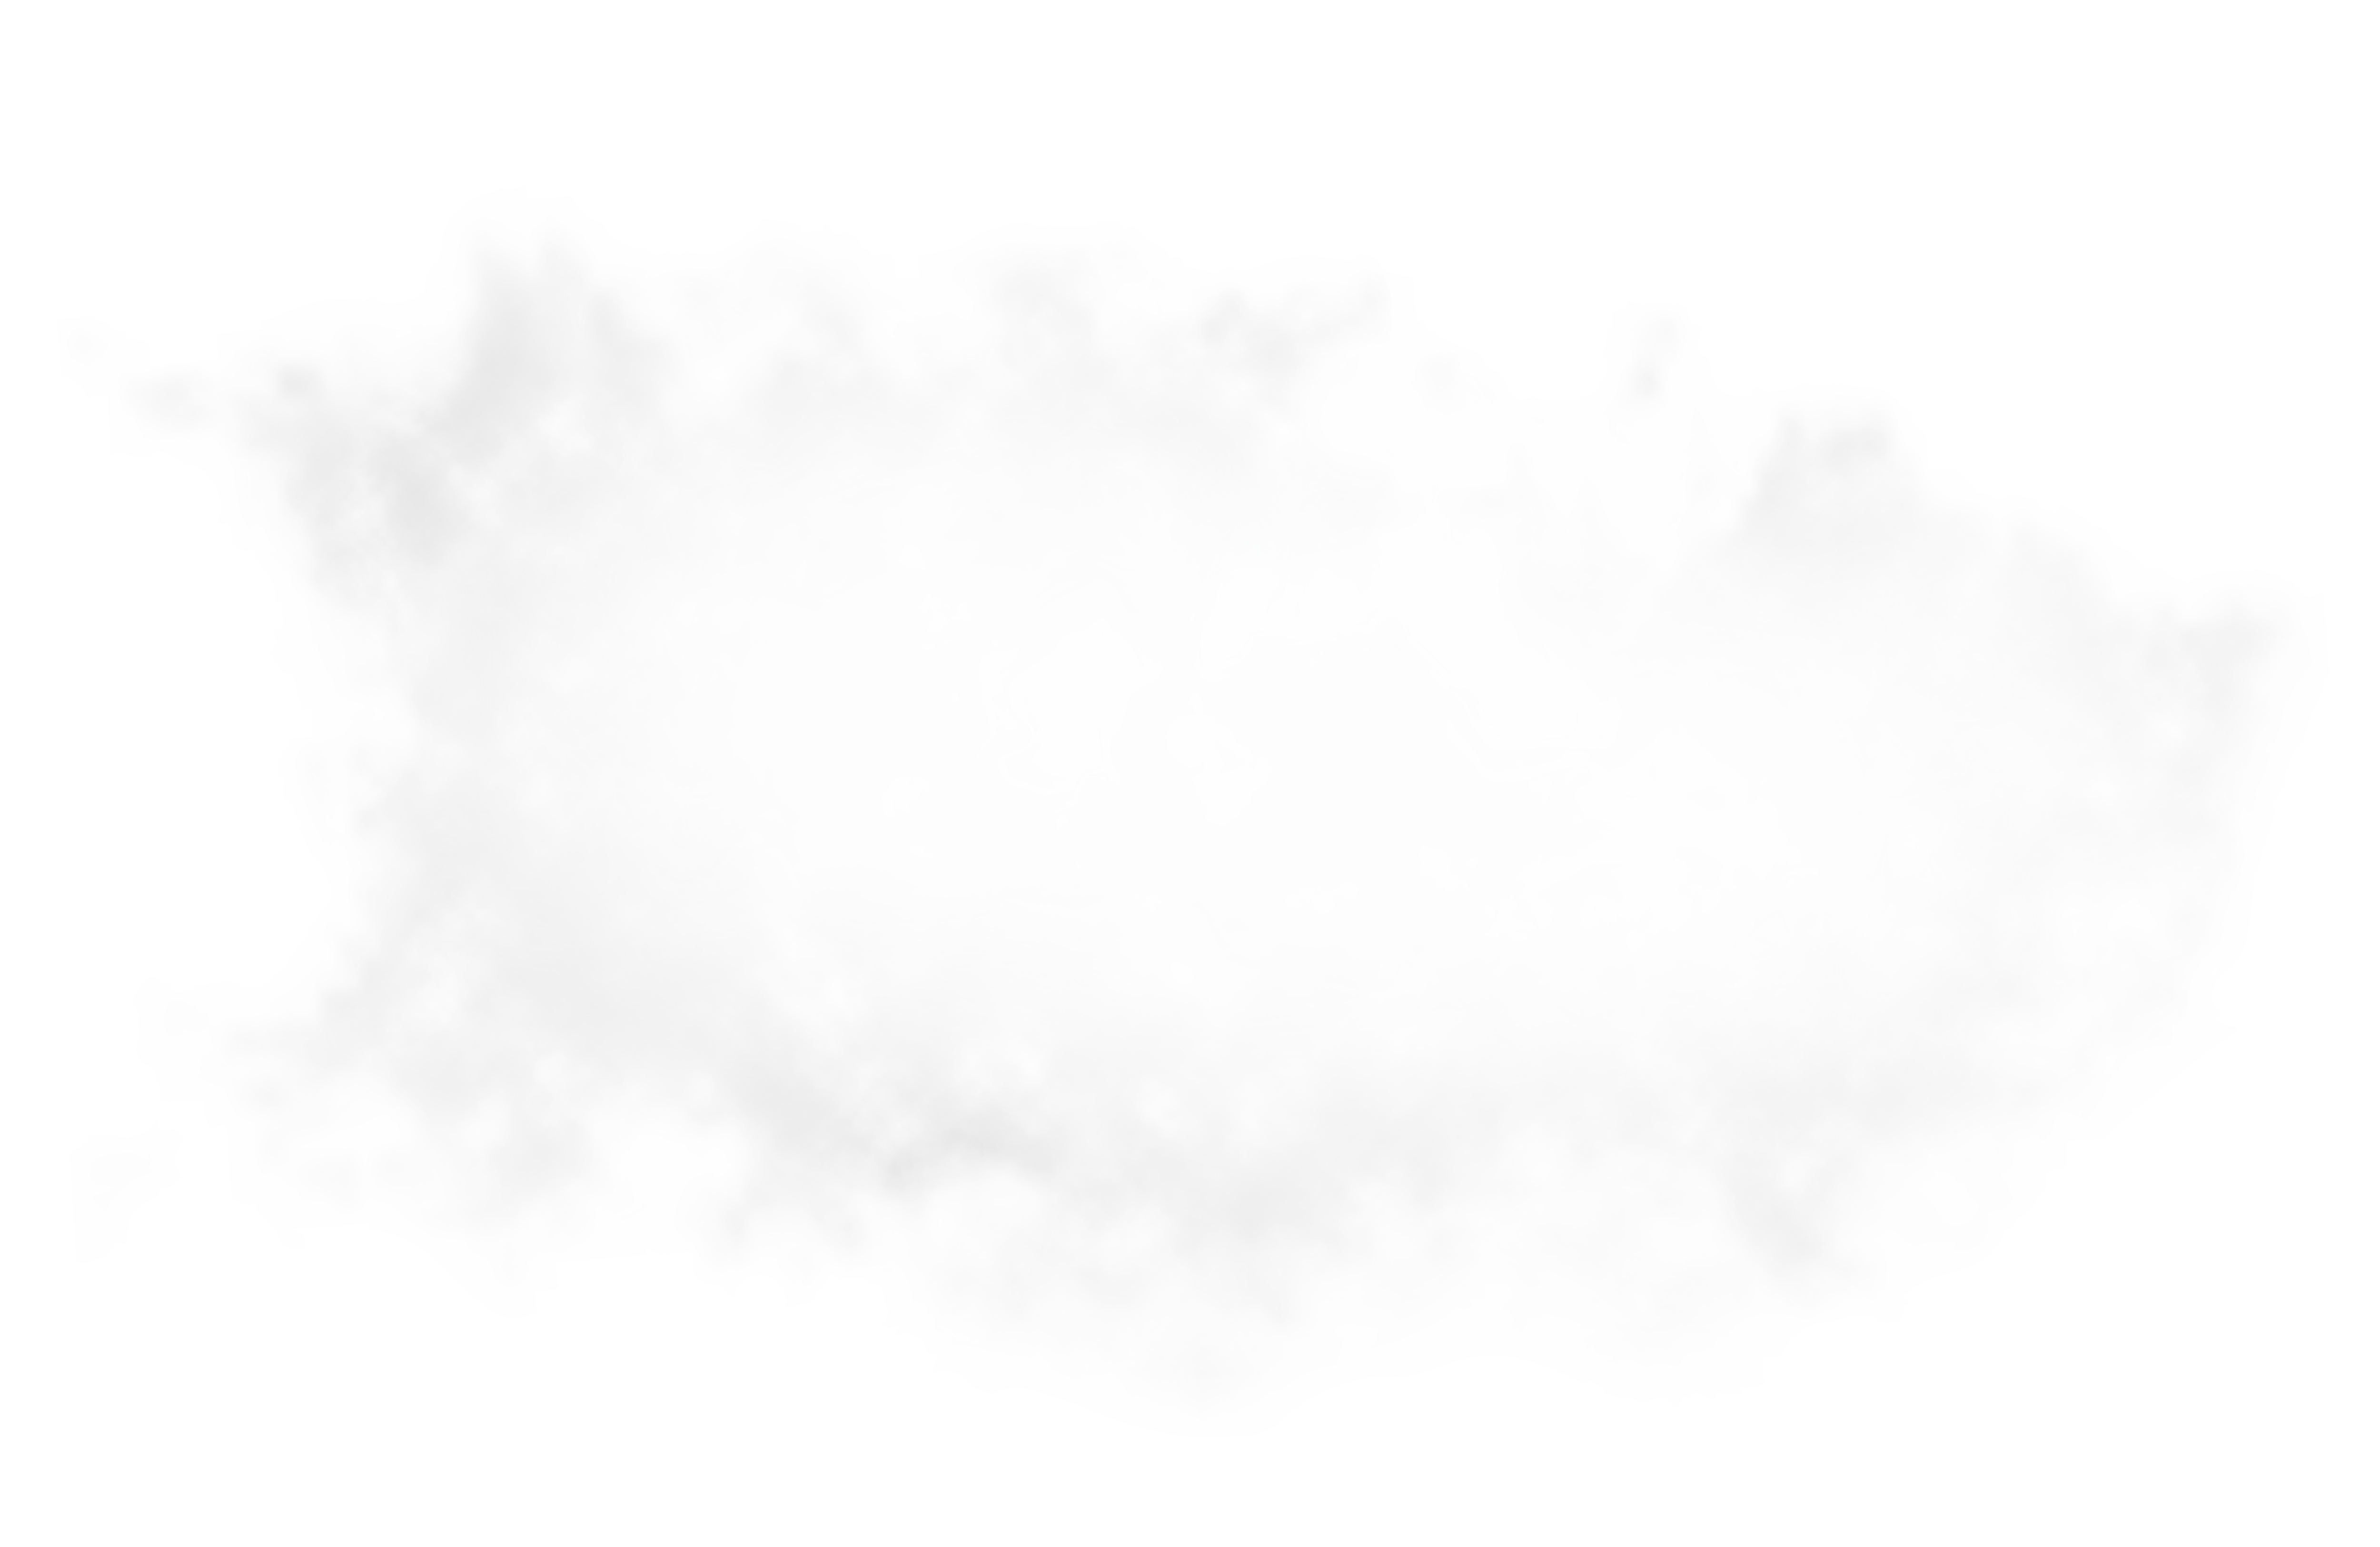 White Cloud Transparent Picture 23436